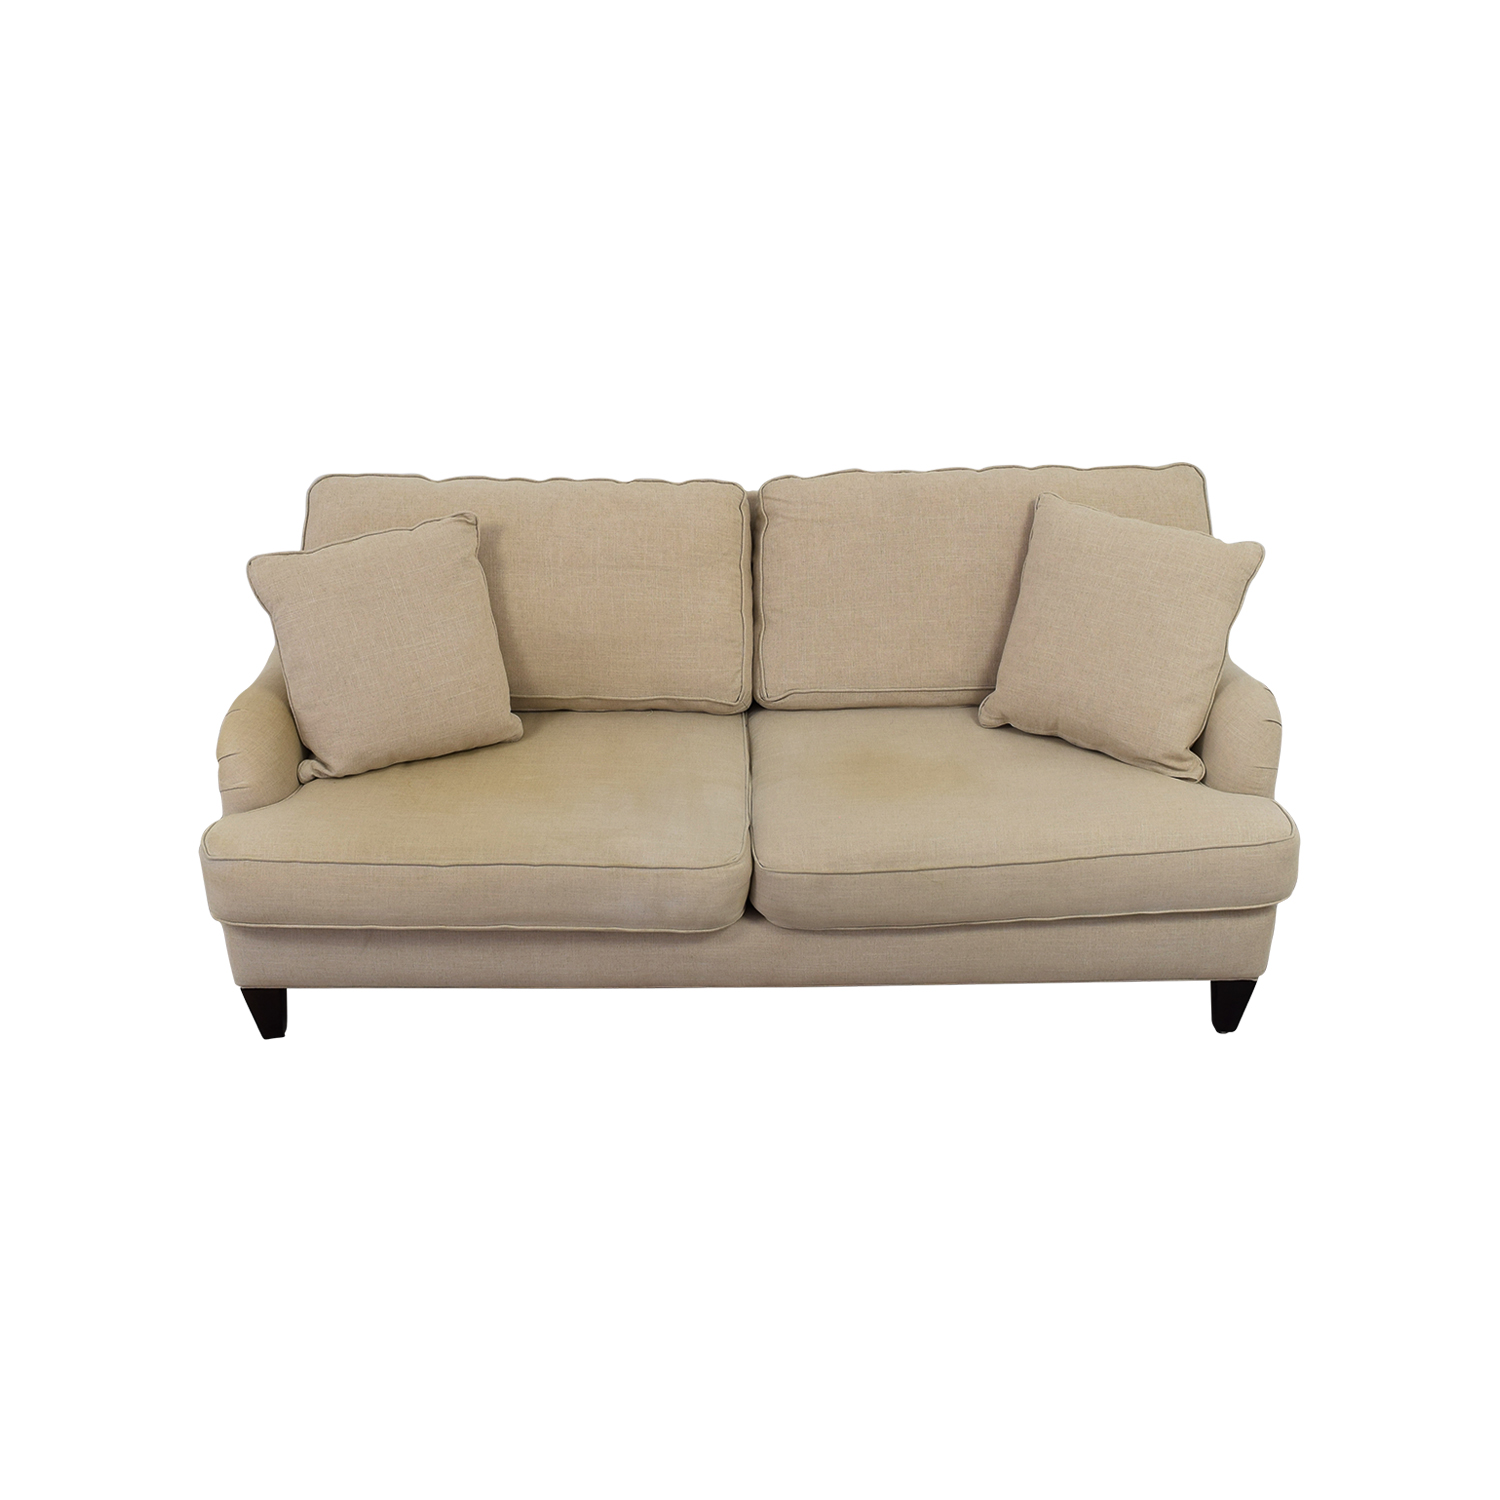 Home Decorators Home Decorators Khaki Two-Cushion Sofa discount